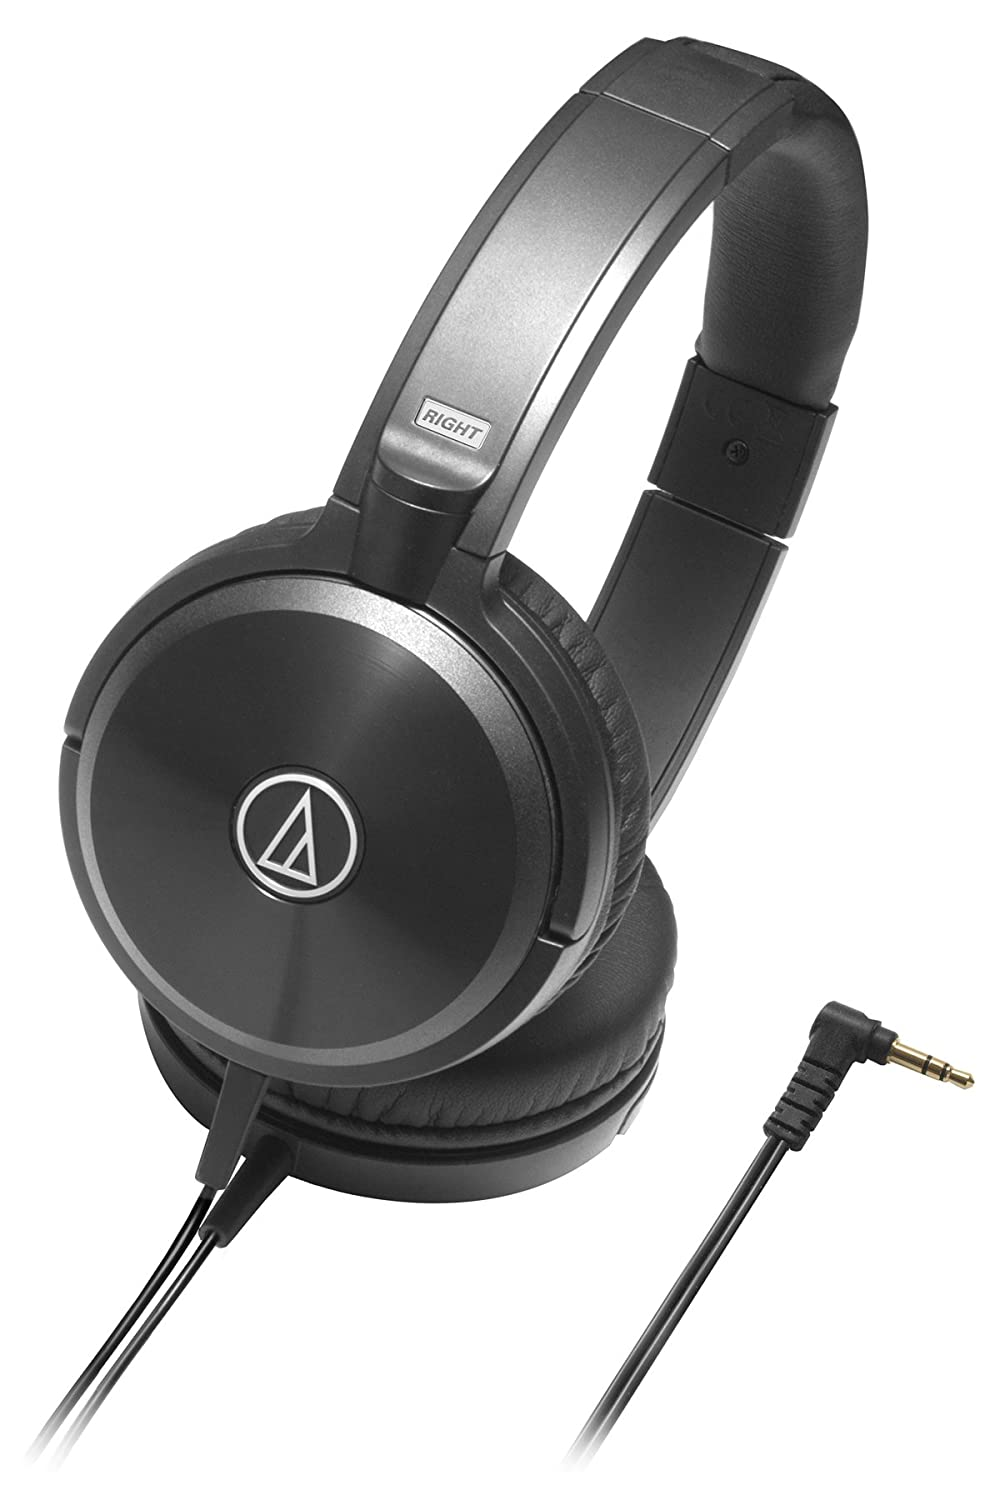 Solid Bass ATH-WS77  Over-Ear Headphones by Audio-Technica -Best Gadgets Outlet